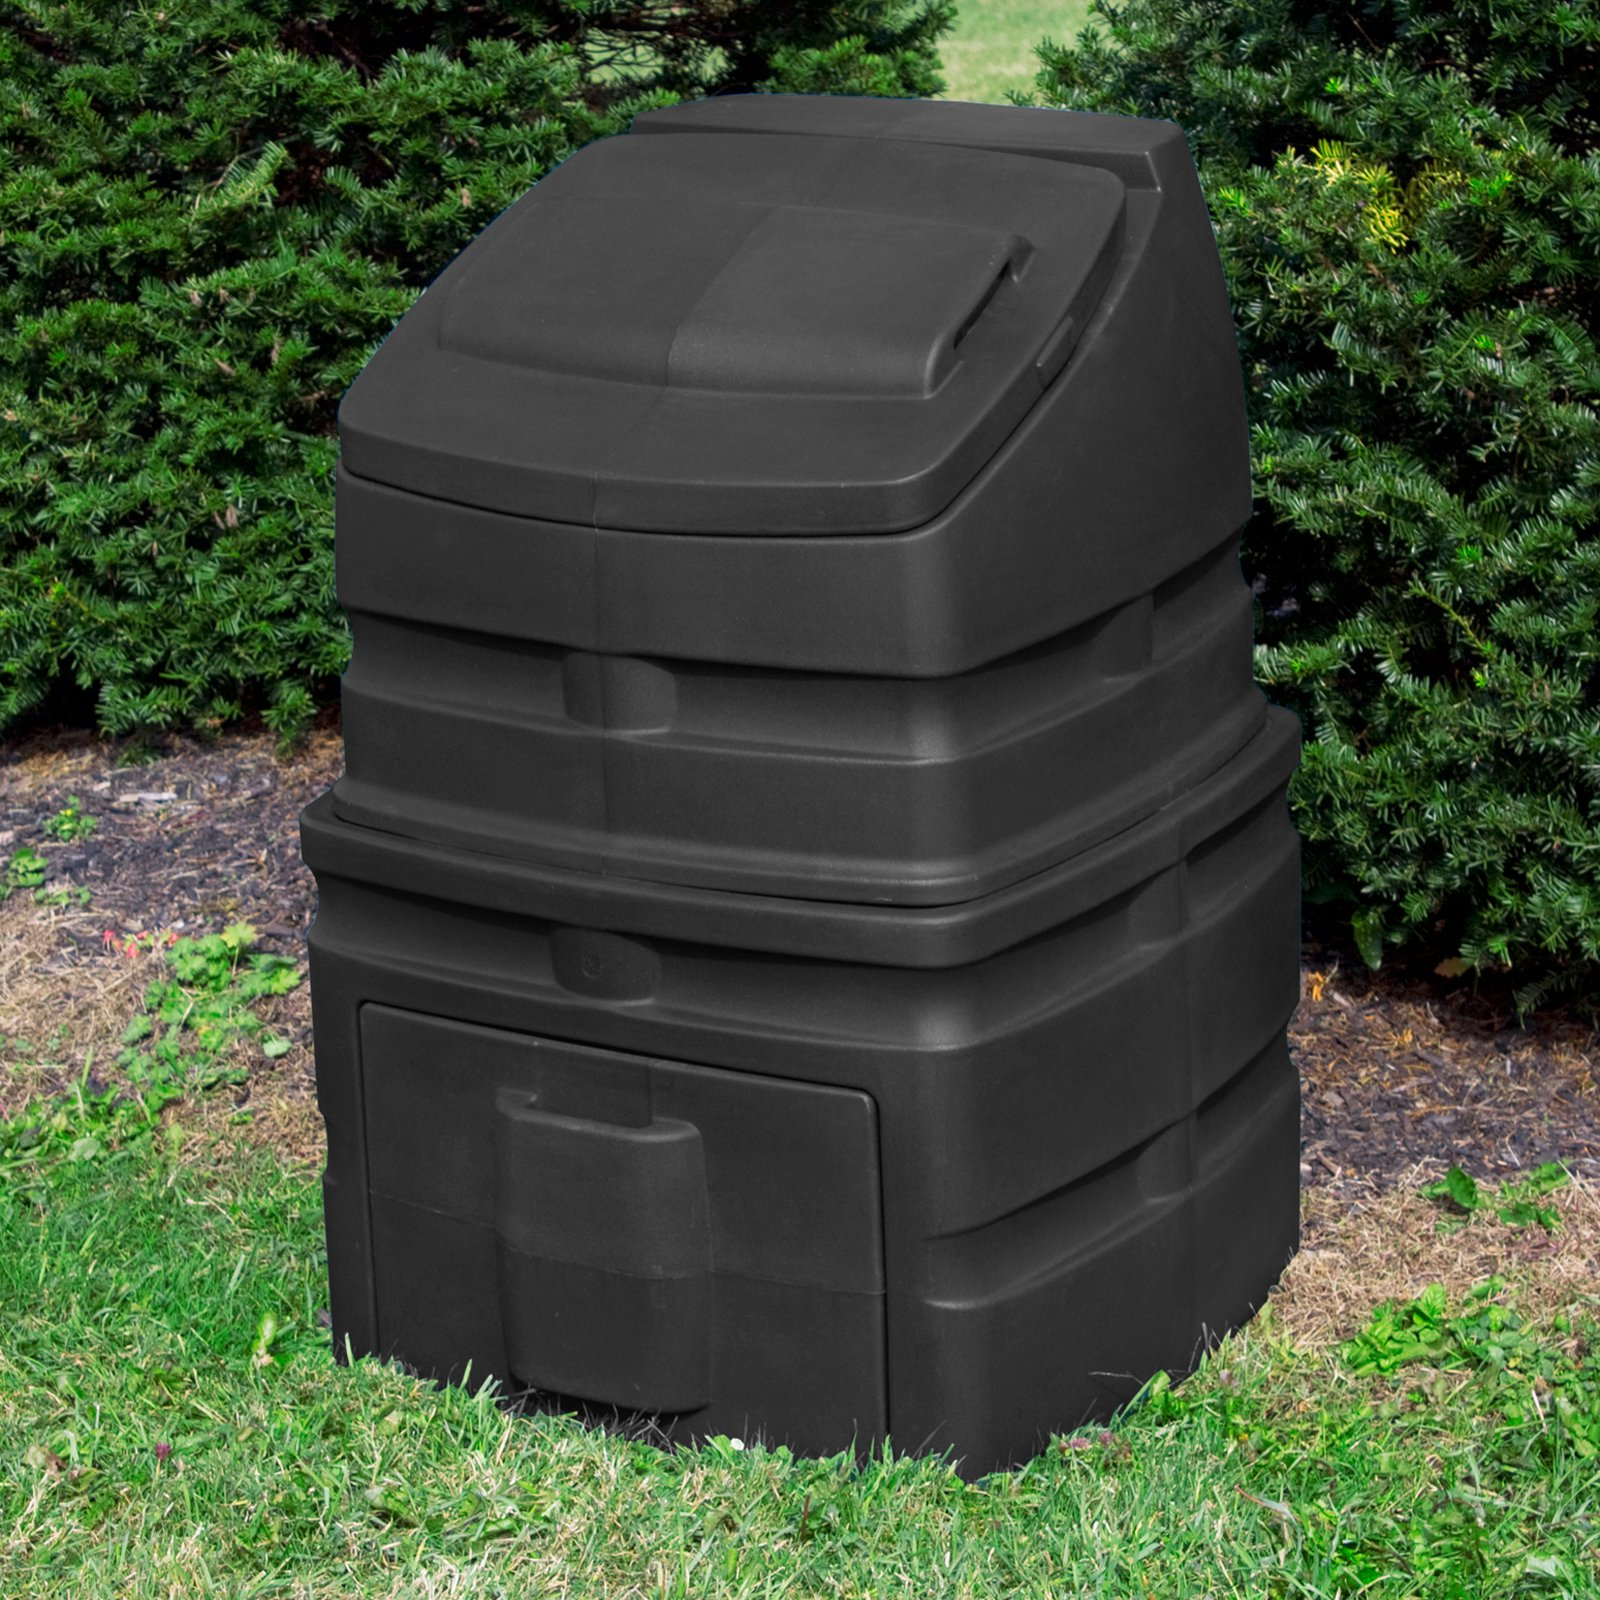 Good Ideas Compost Wizard 90 Gallon Compost Bin by Good Idea Inc